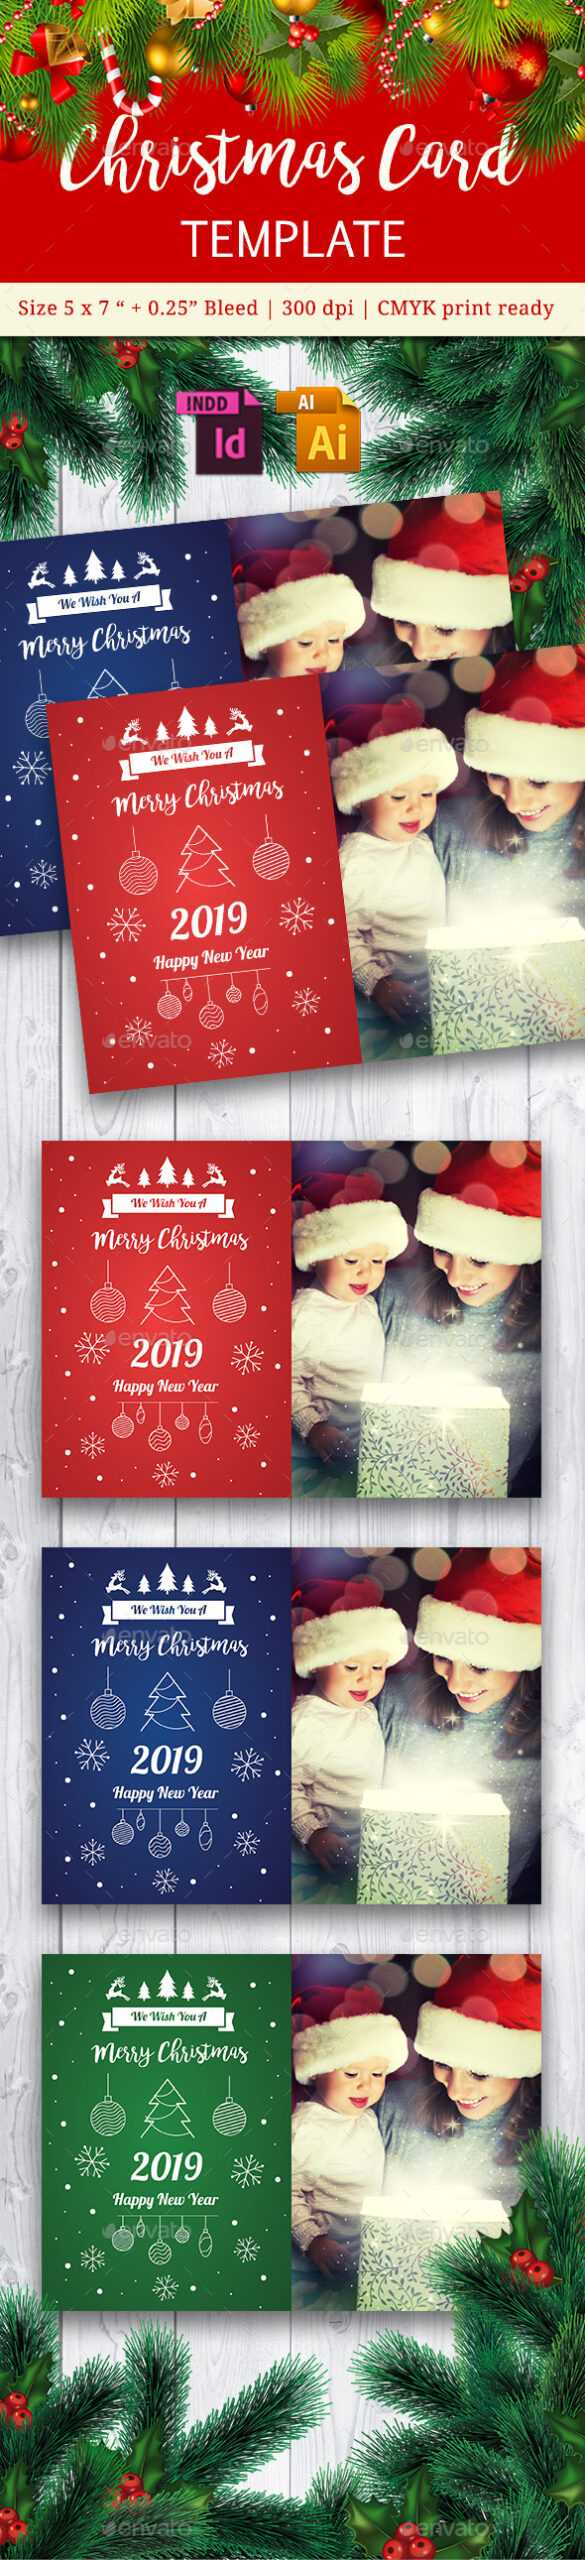 Indesign Card Designs & Templates From Graphicriver With Regard To Indesign Birthday Card Template